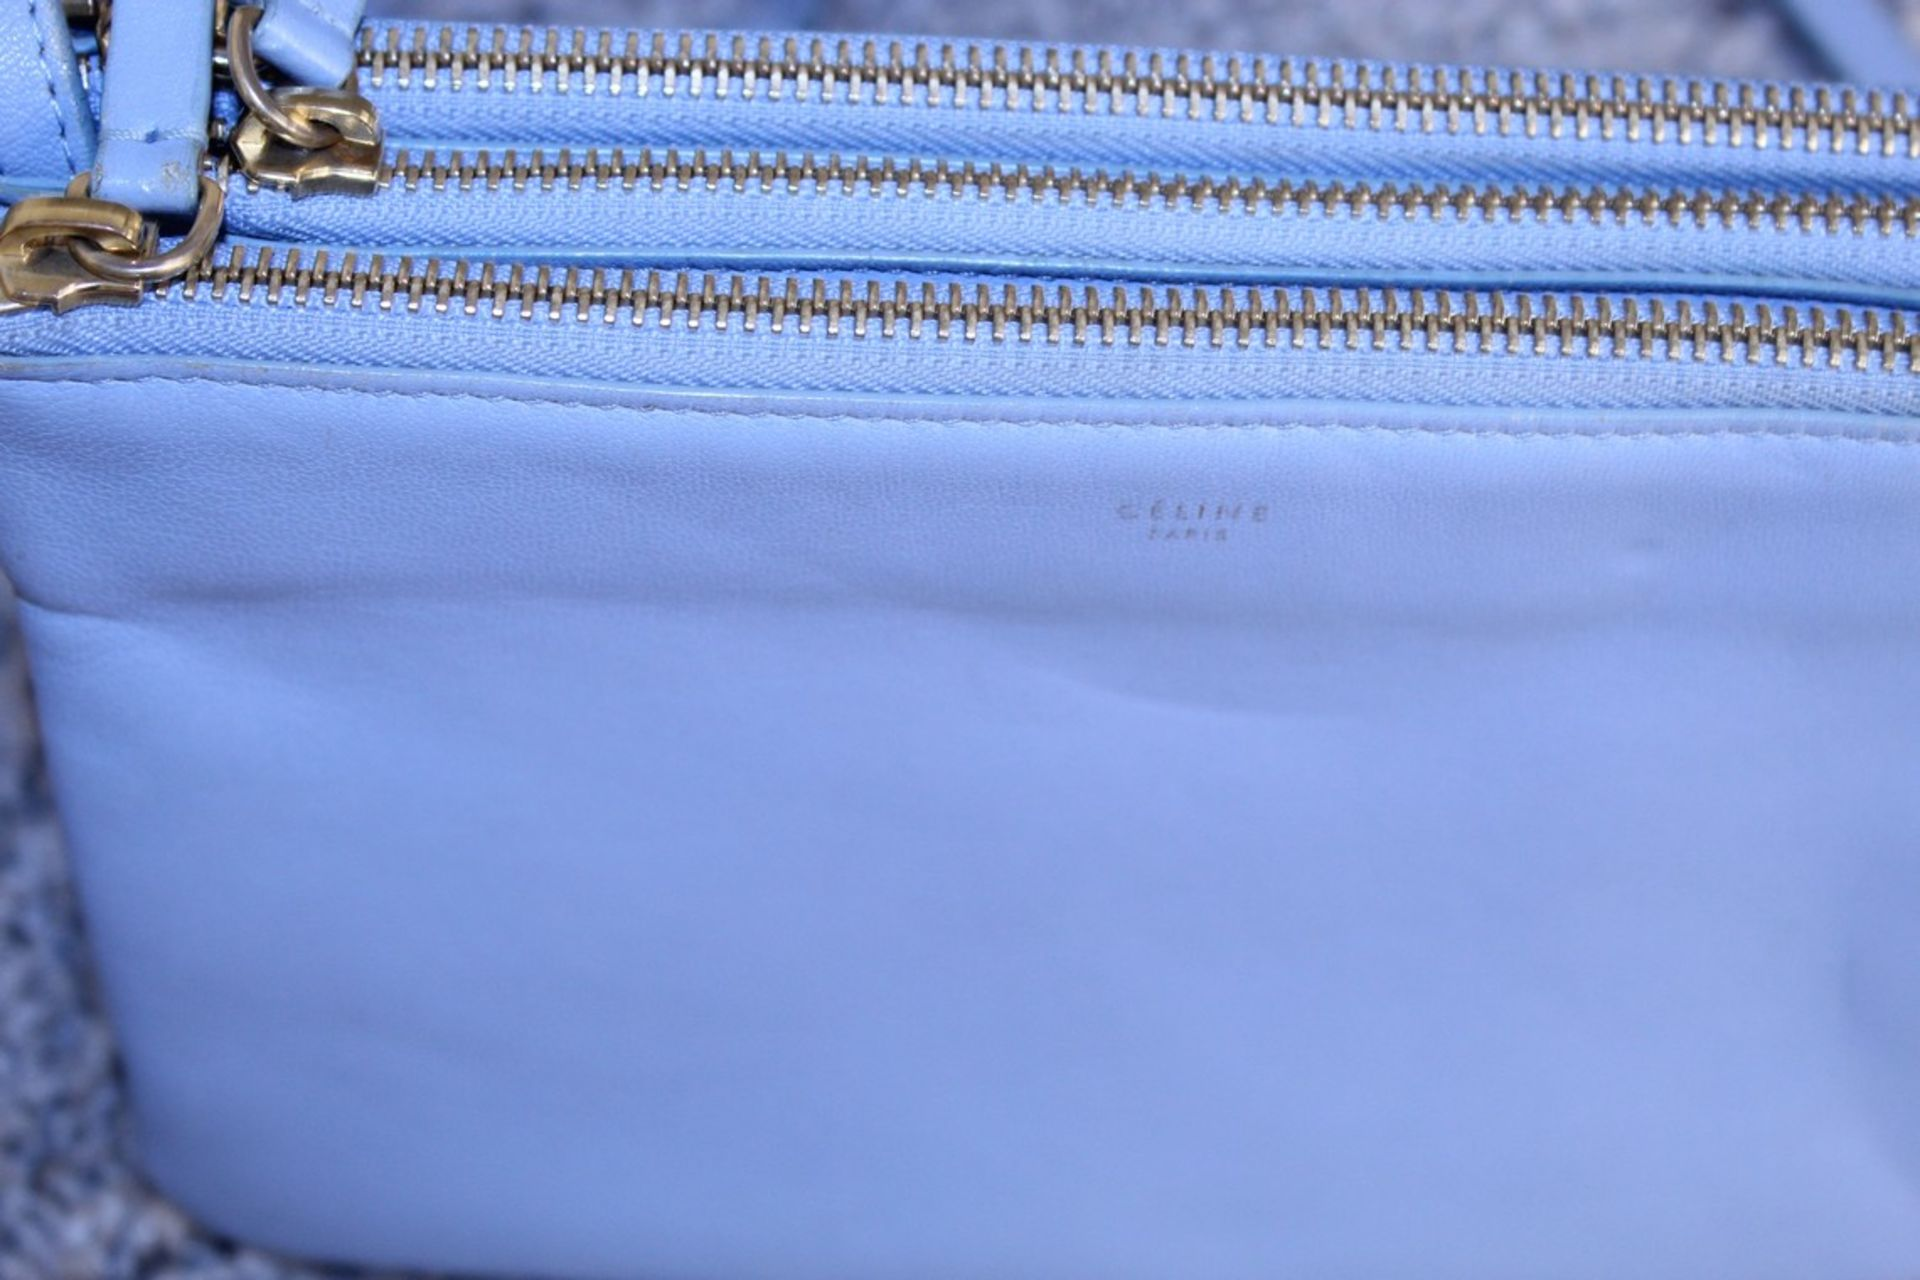 RRP £890 Celine Small Shoulder Bag, Blue Small Grained Claf Leather With Blue Leater Handles. - Image 2 of 4